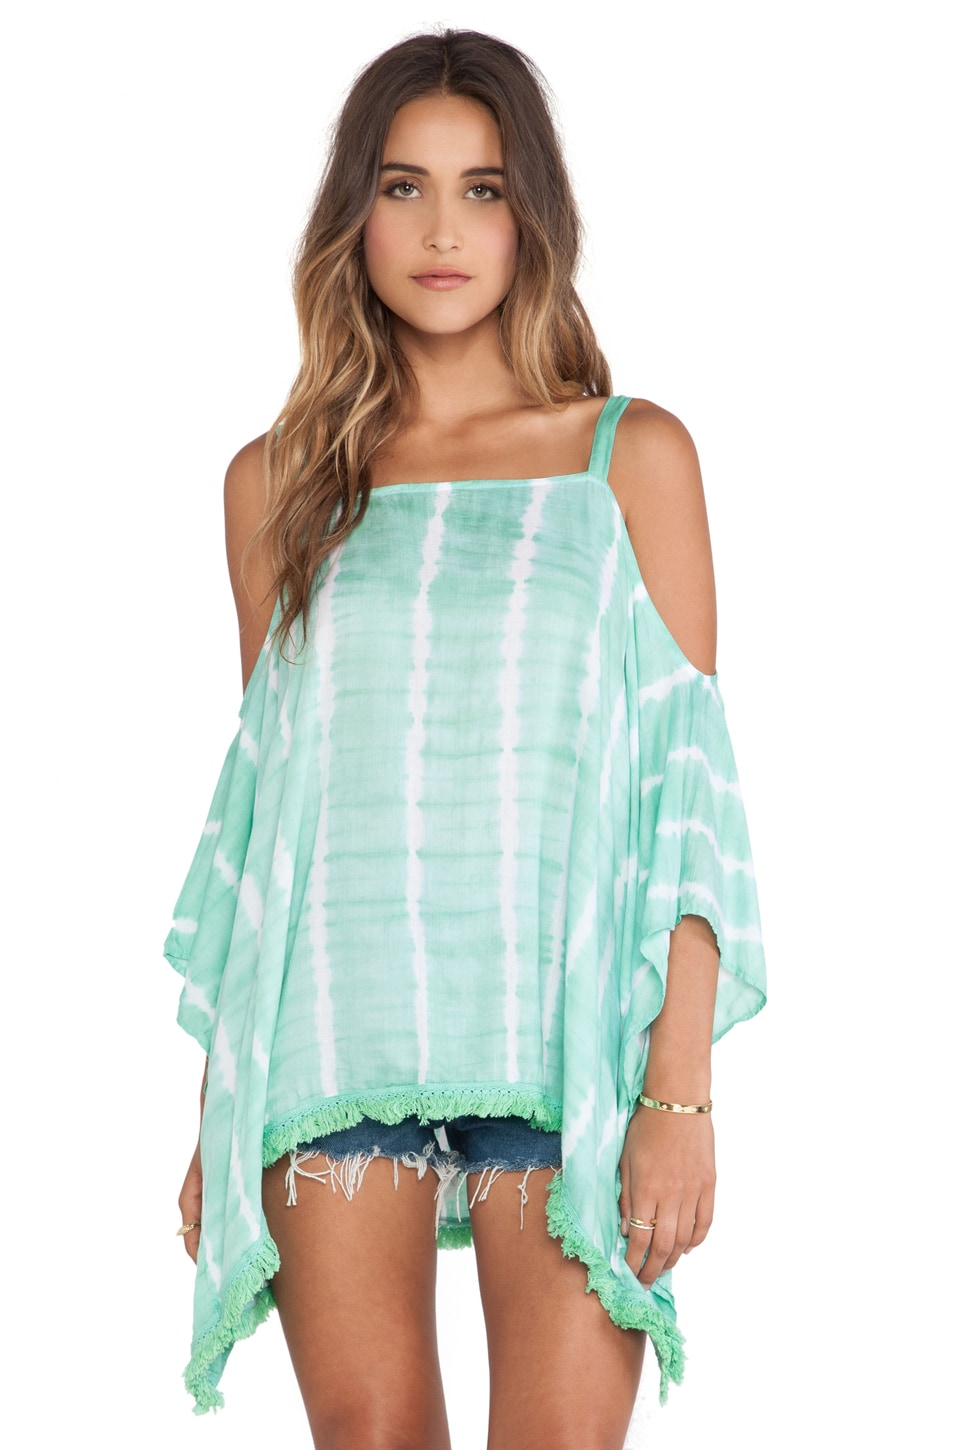 Tiare Hawaii Tunic in Teal & White Vert